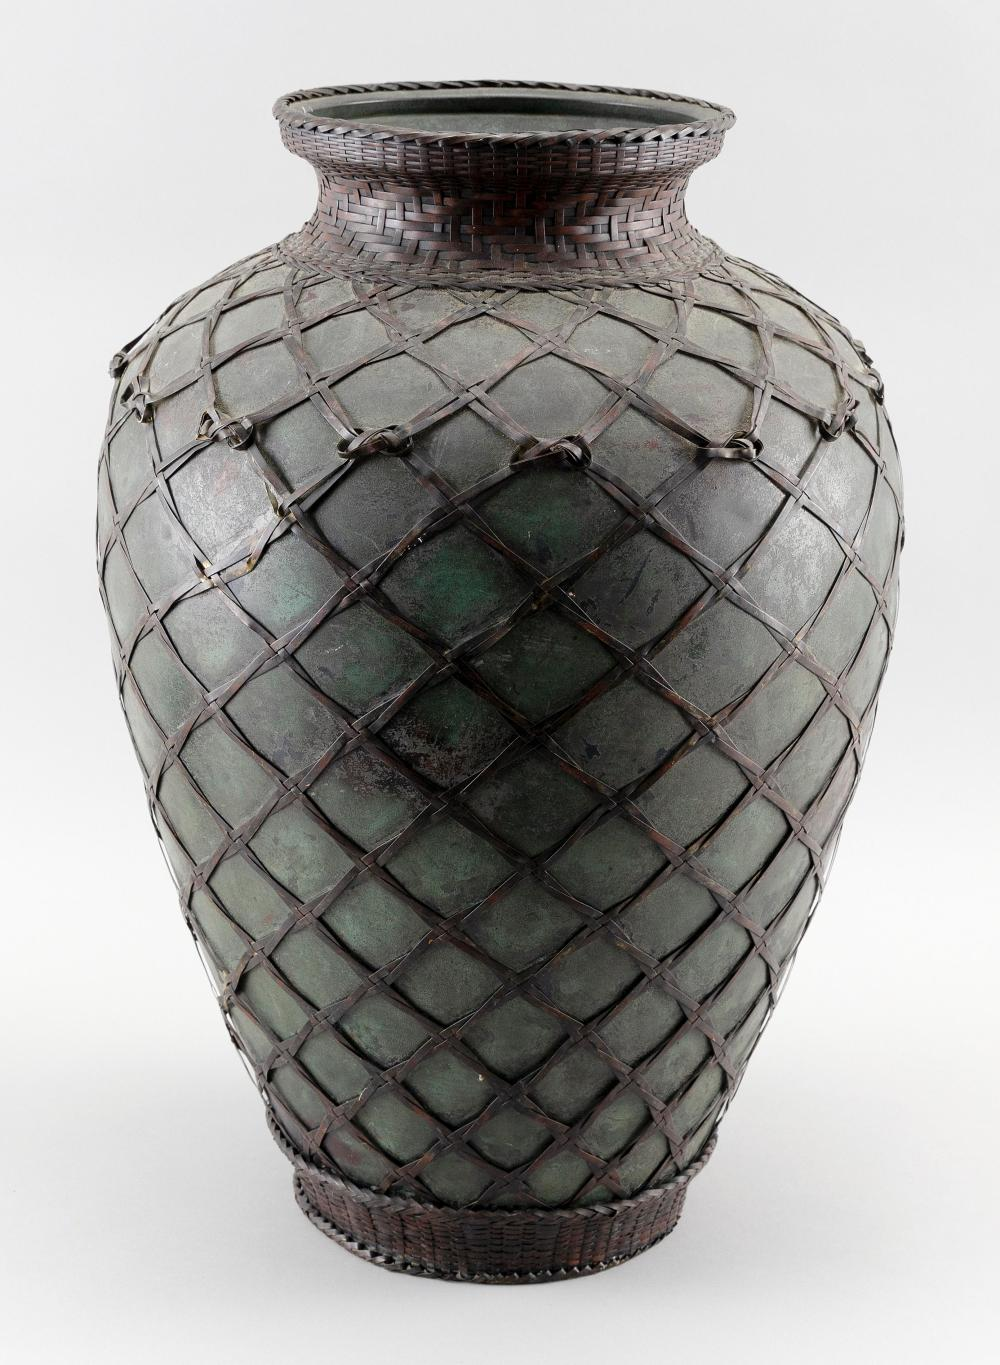 JAPANESE PATINATED BRONZE VASE In urn form, with overlaid metal Ikebana-style basketry. Height 19